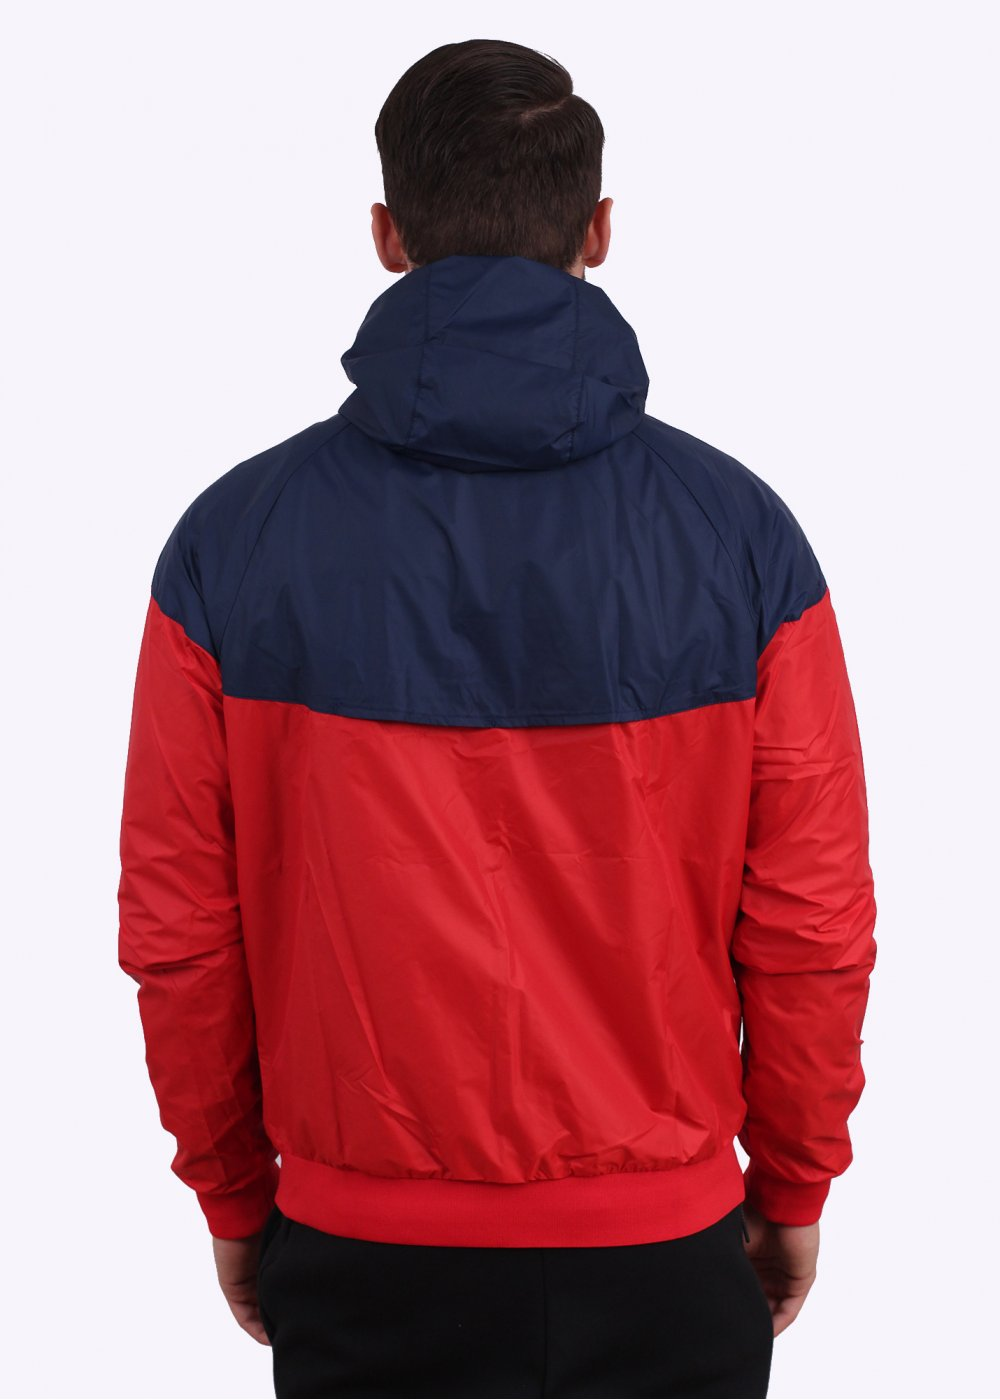 Nike Windrunner Jacket Red Navy